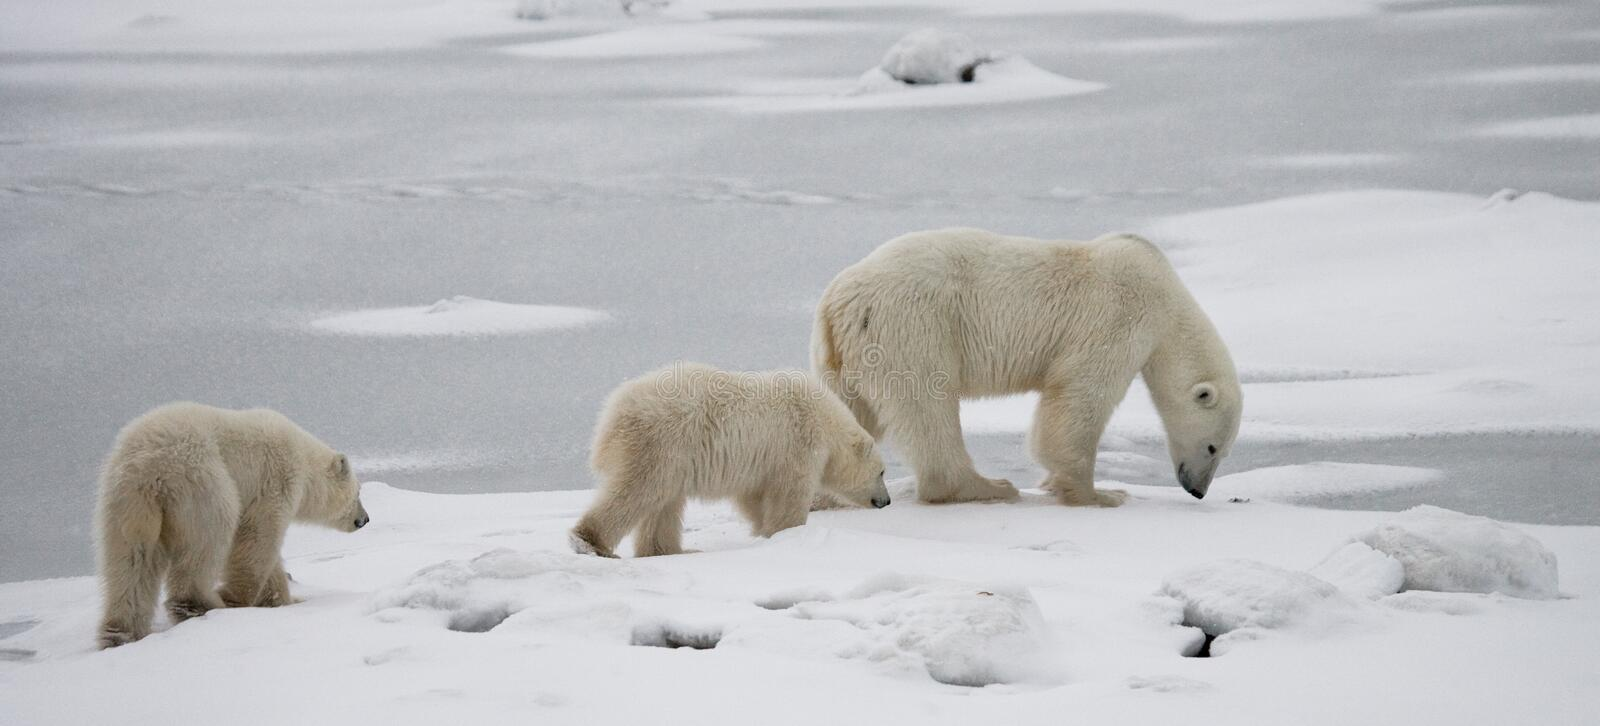 Polar bear with a cubs in the tundra. Canada. An excellent illustration stock images